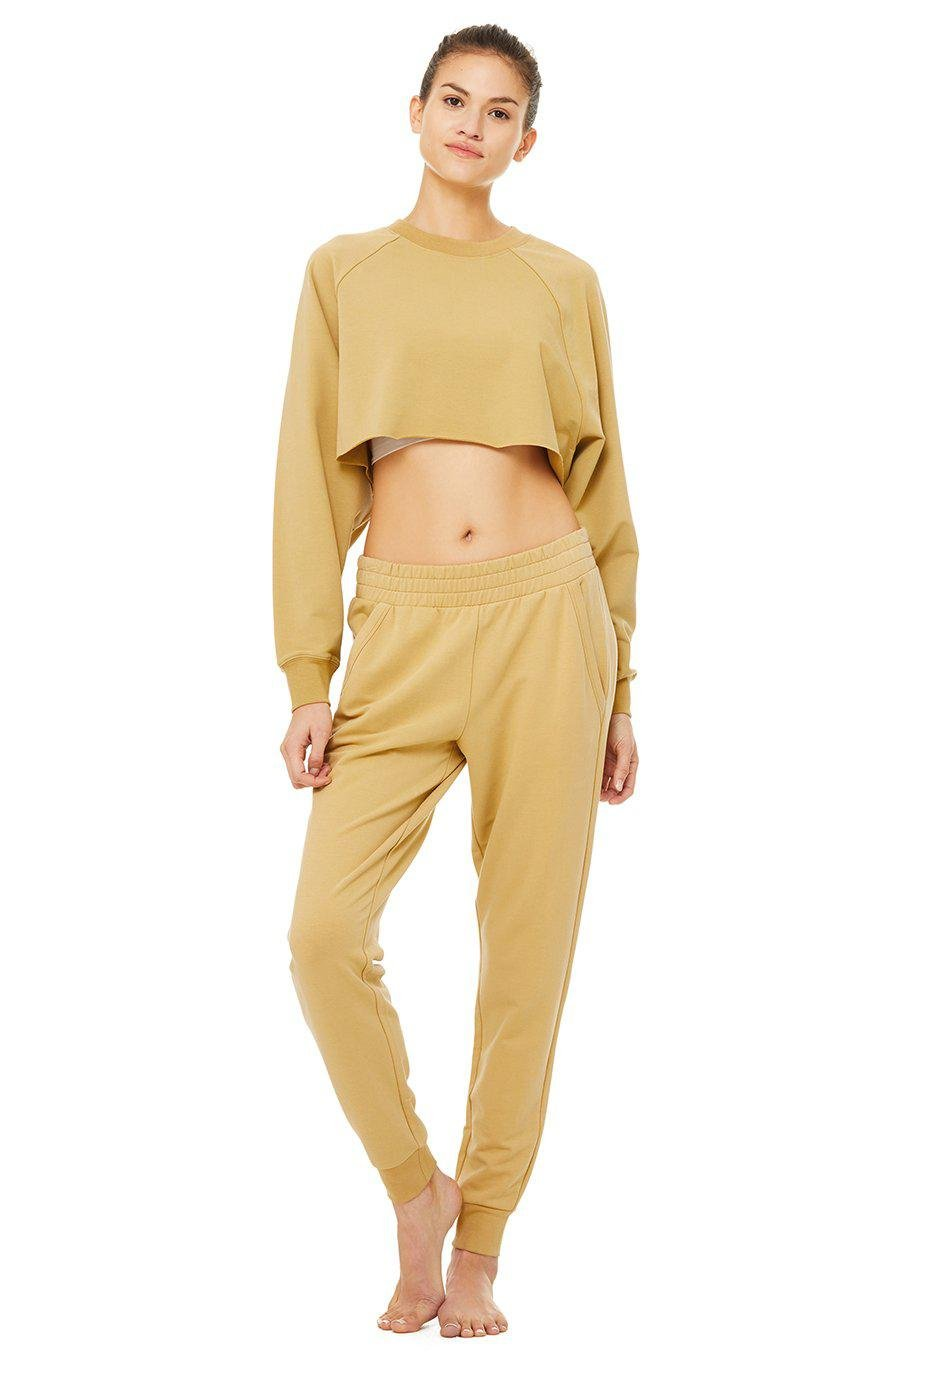 Double Take Pullover - Honey 3